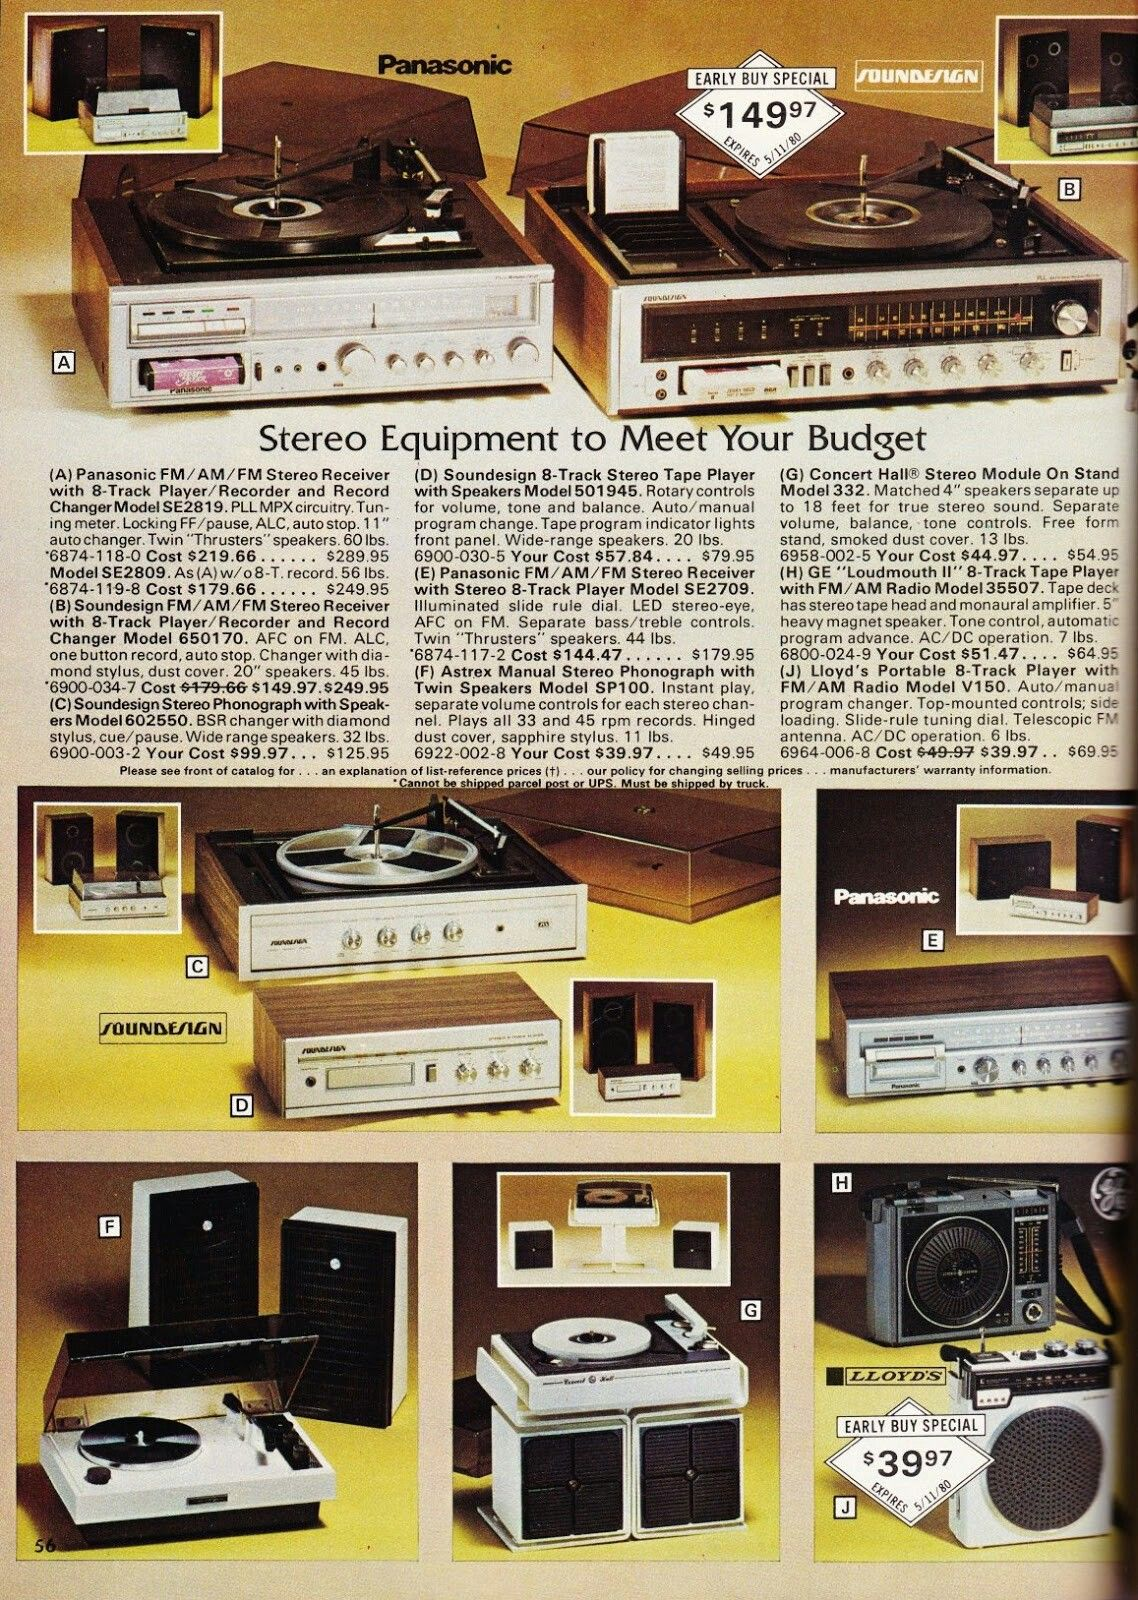 Electronics from a Service Merchandise Catalog